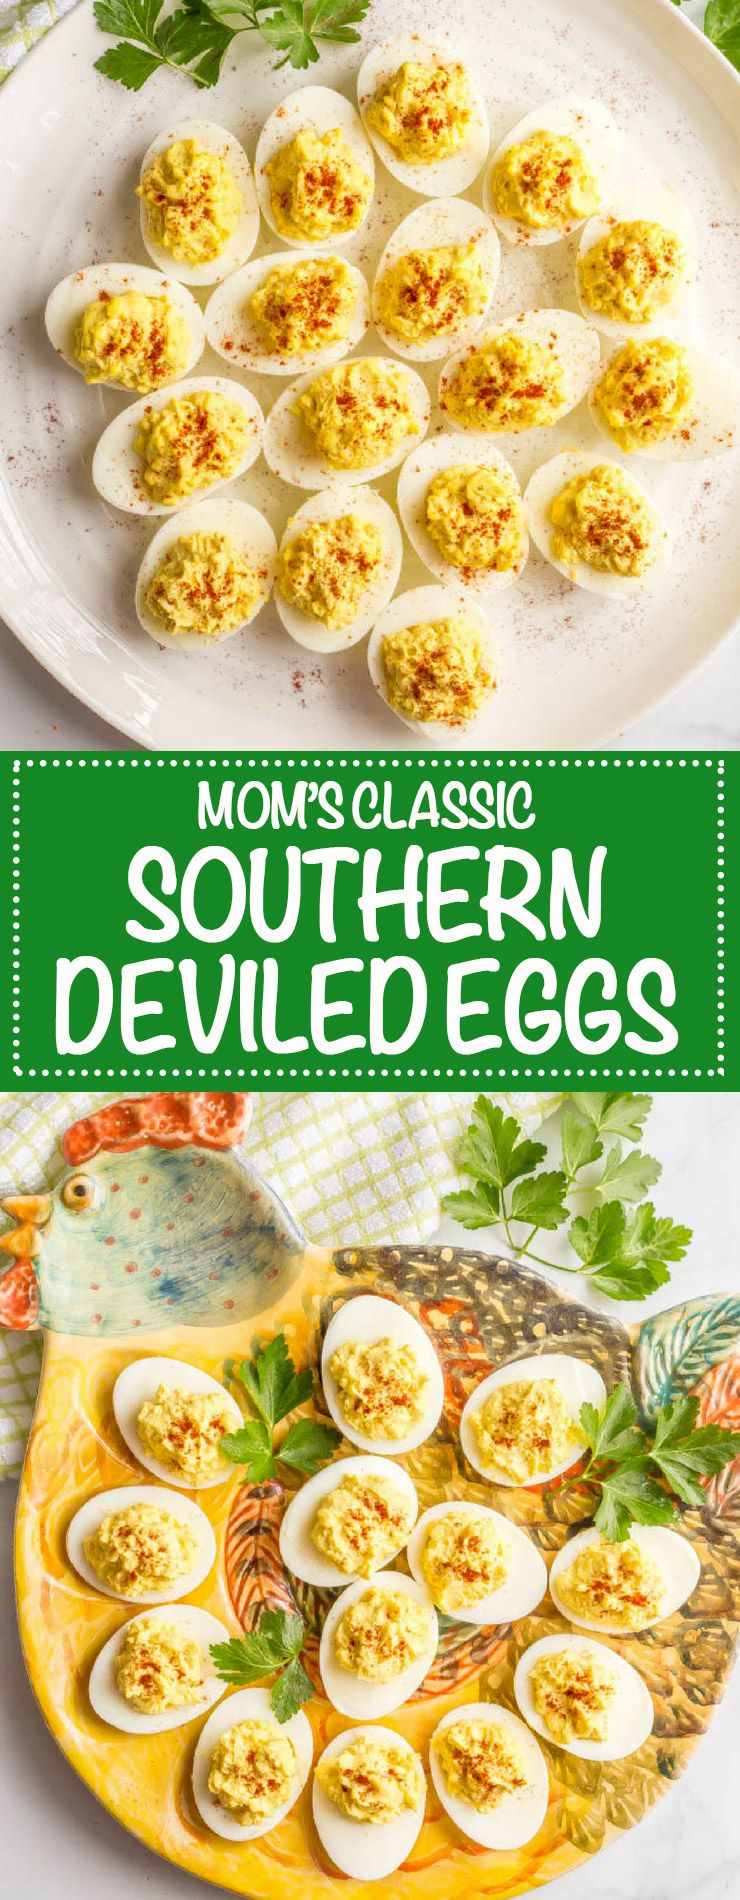 Mom's classic Southern deviled eggs (+ video) - Family Food on the Table